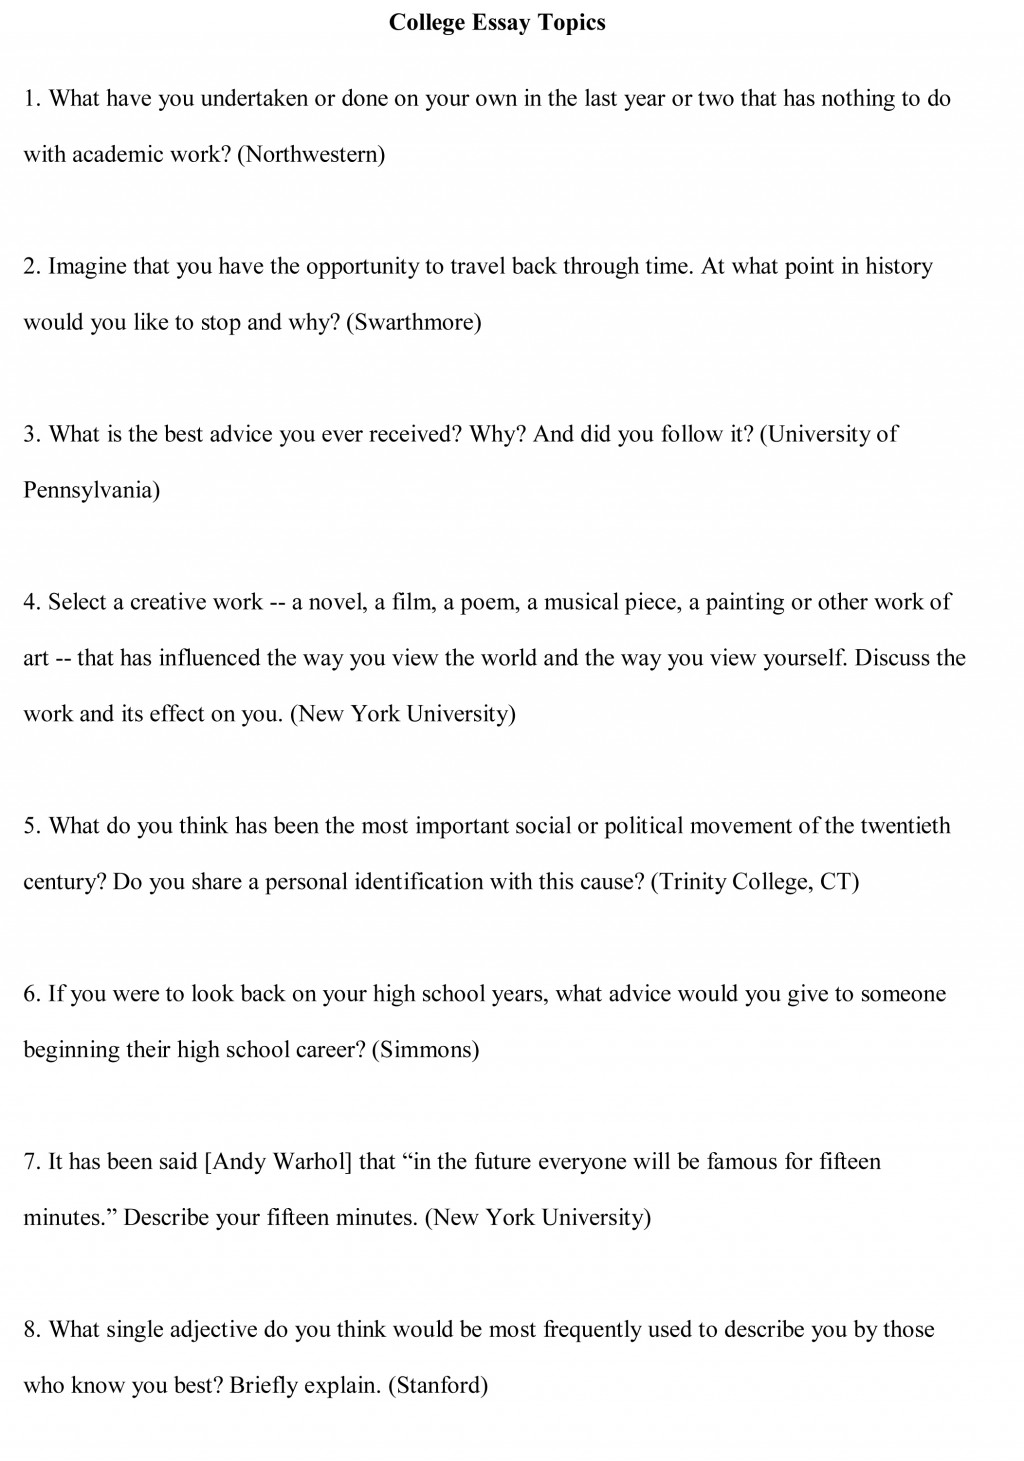 008 Top Essay Topics For College Free Sample1cbu003d Unbelievable 10 Large